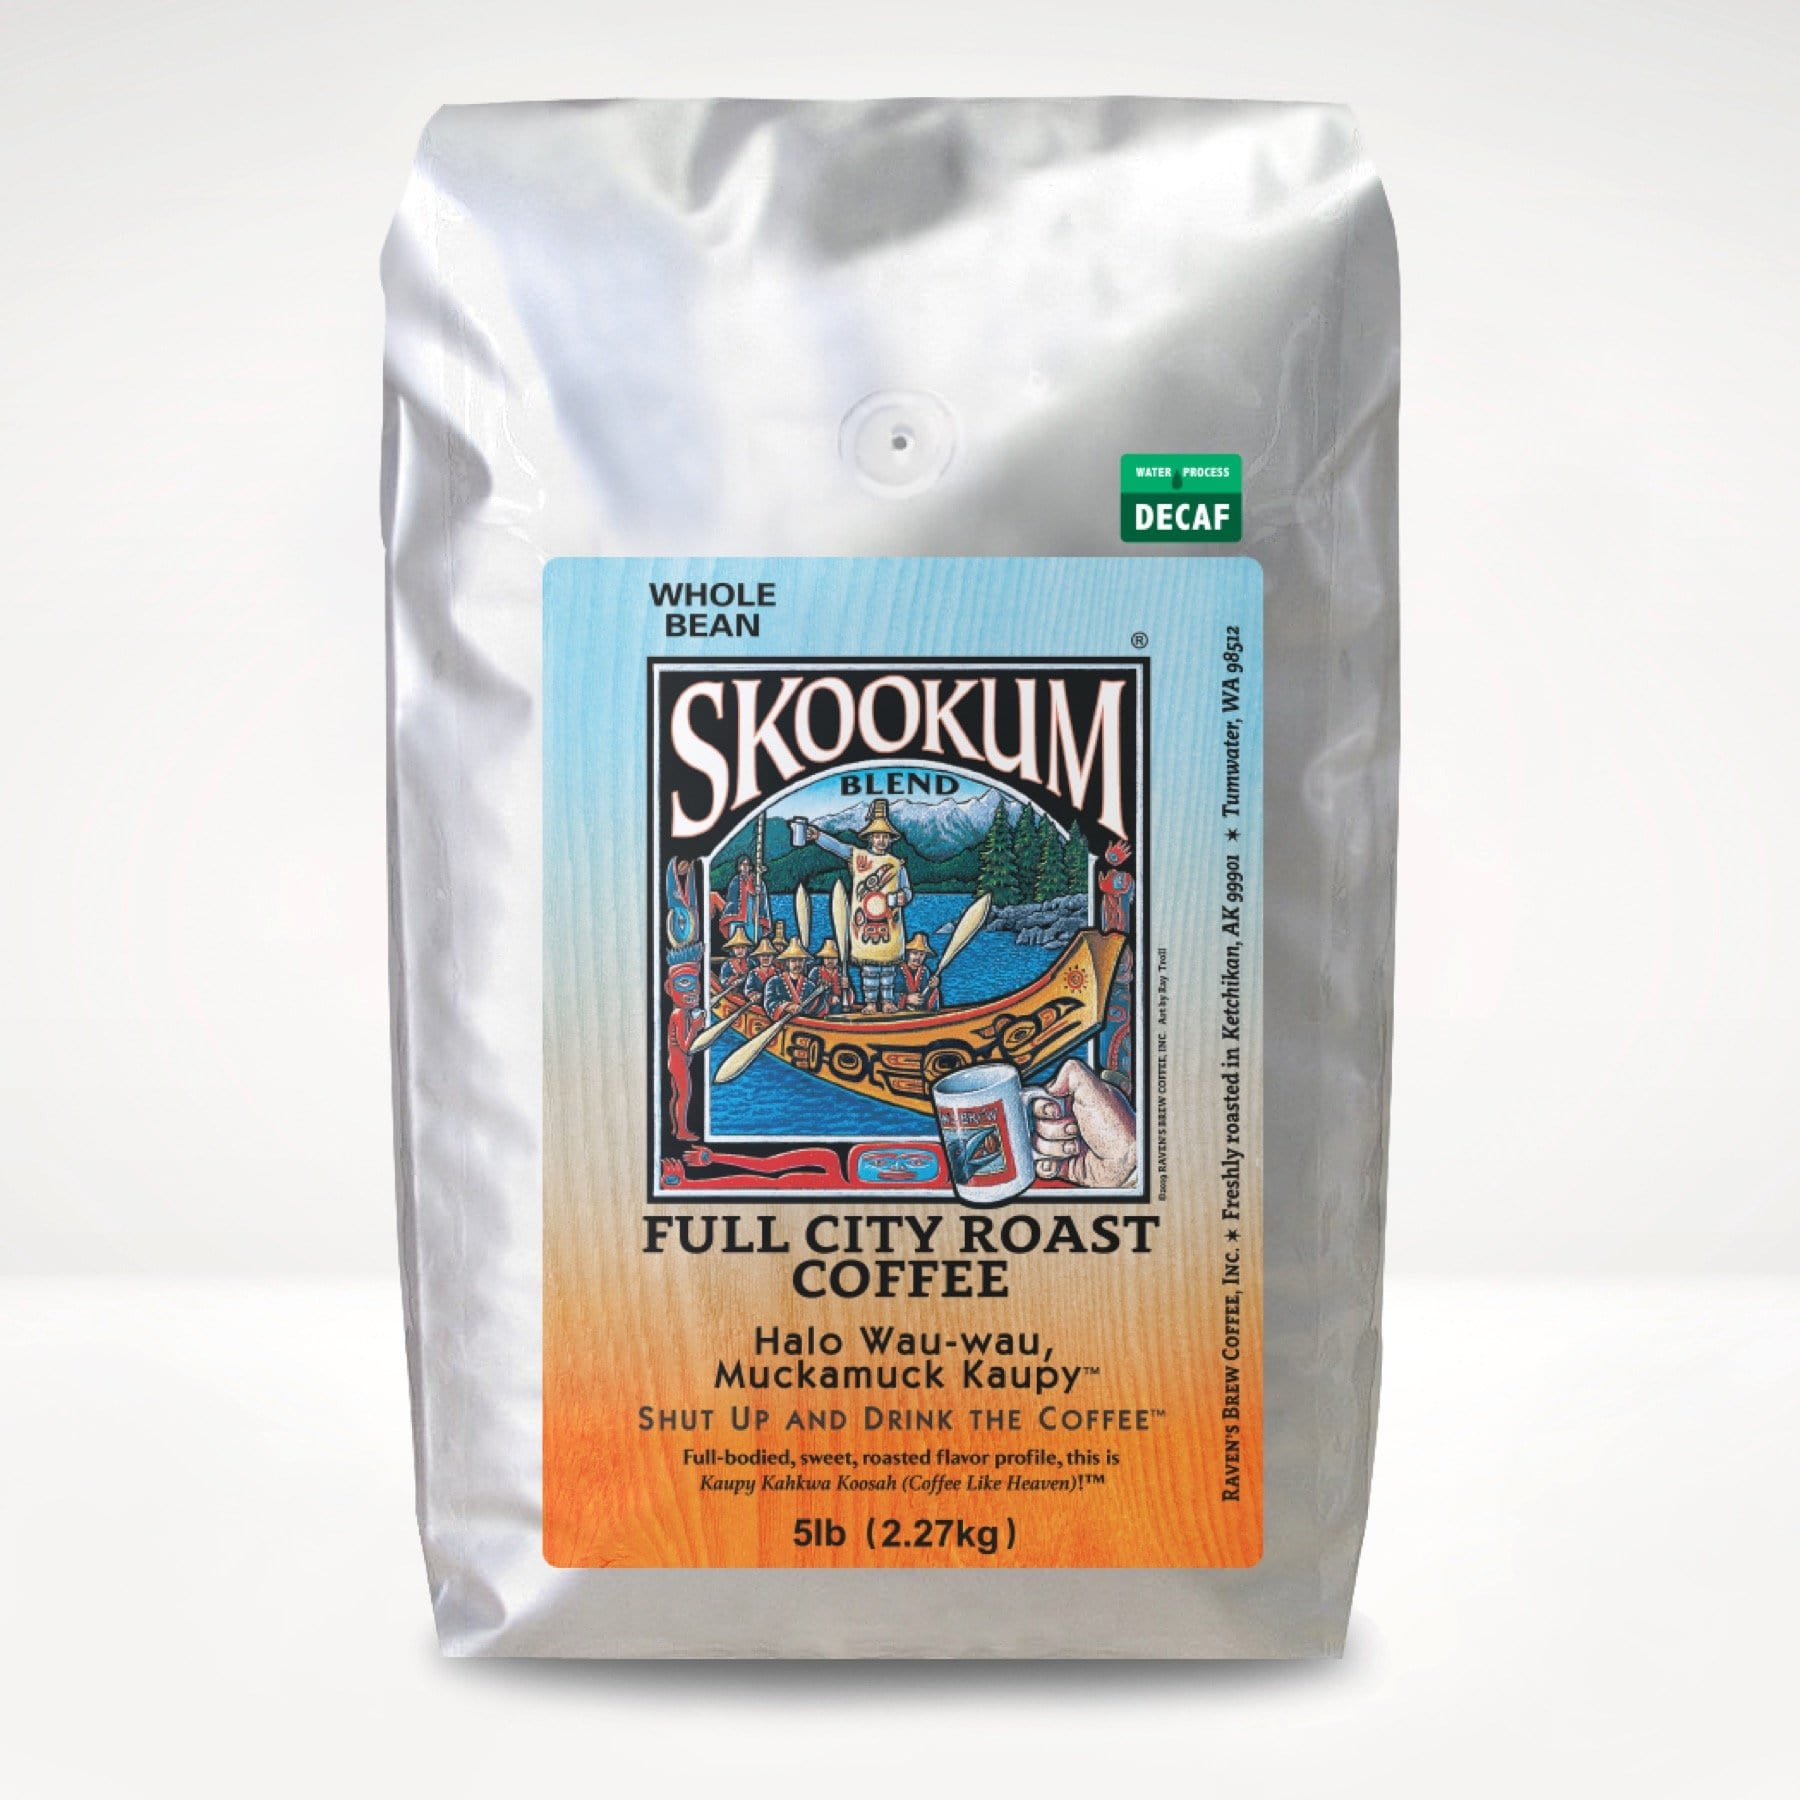 5lb Decaf Skookum® Blend Coffee